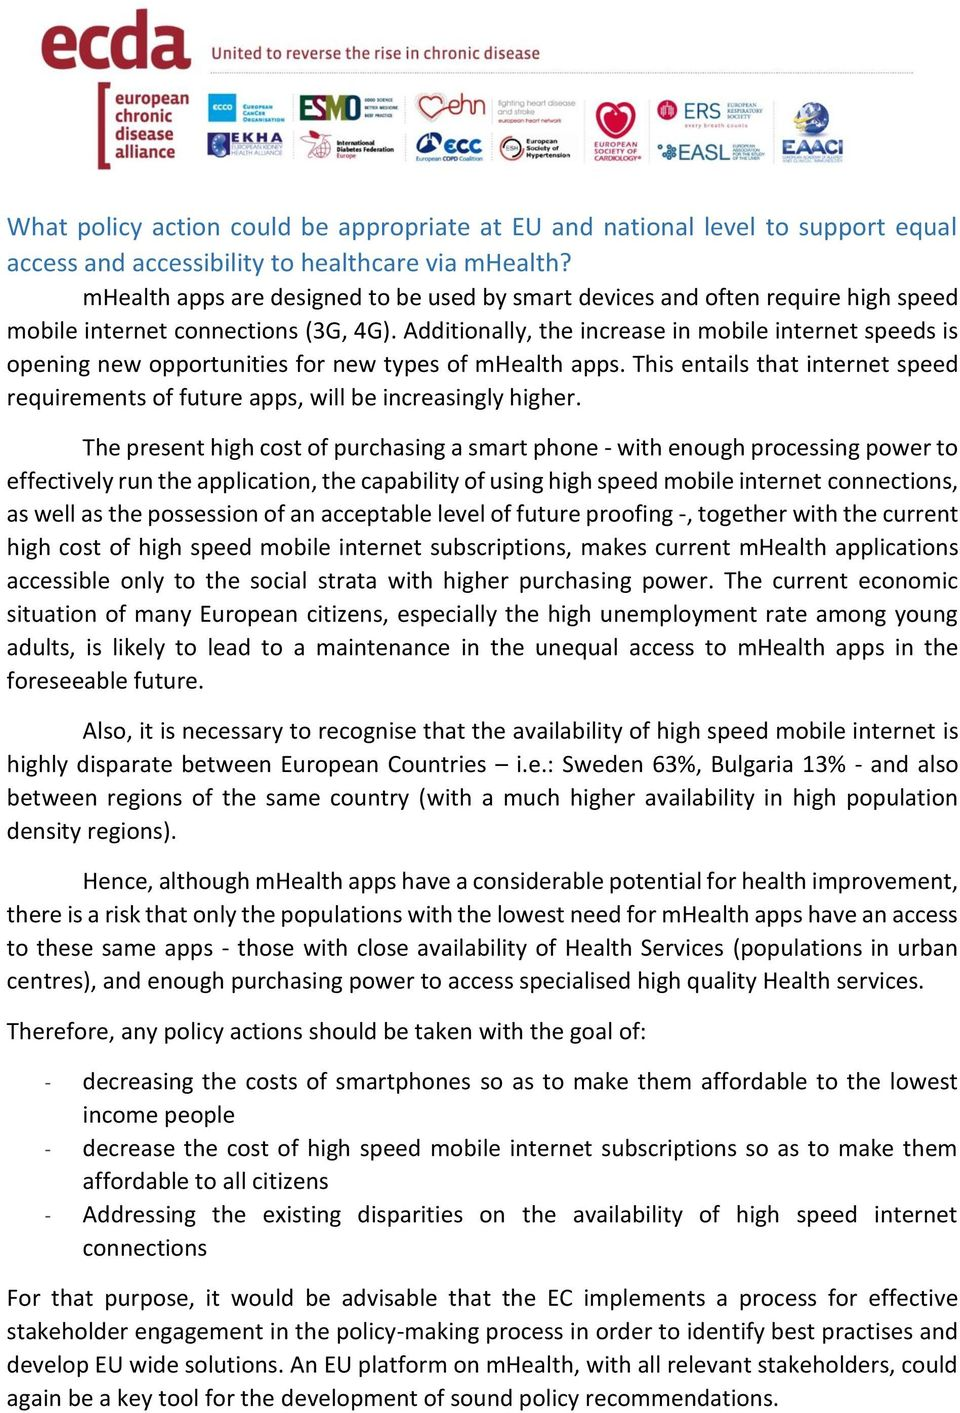 Additionally, the increase in mobile internet speeds is opening new opportunities for new types of mhealth apps.